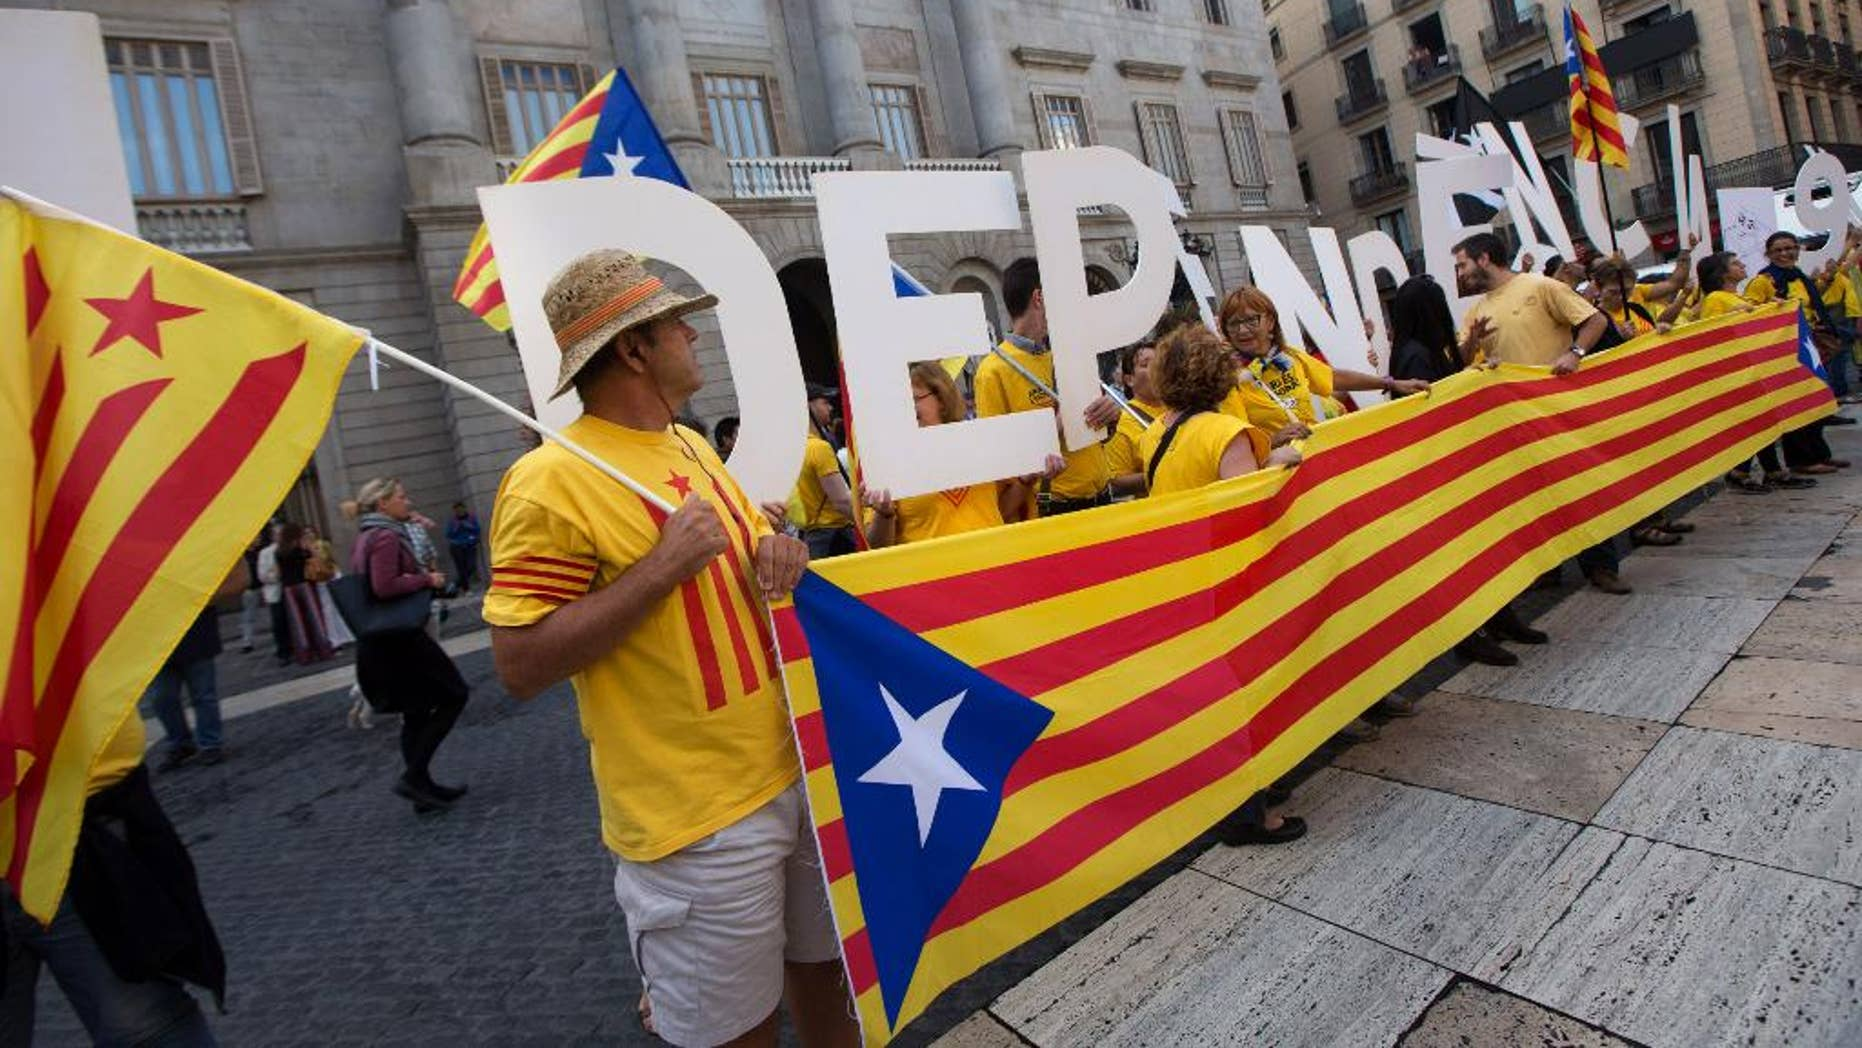 Pro independence supporters gather outside the Generalitat Palace, the main head office of the Government of Catalonia, as Catalonia's regional president Artur Mas, signs the decree to call the referendum in Catalonia in Barcelona, Spain, Saturday, Sept. 27, 2014.  The president of Spain's powerful northeastern region of Catalonia on Saturday formally called an independence referendum Nov. 9, the latest secession push in Europe and one of the most serious challenges to the Spanish state of recent years. (AP Photo/Jordi Borras)